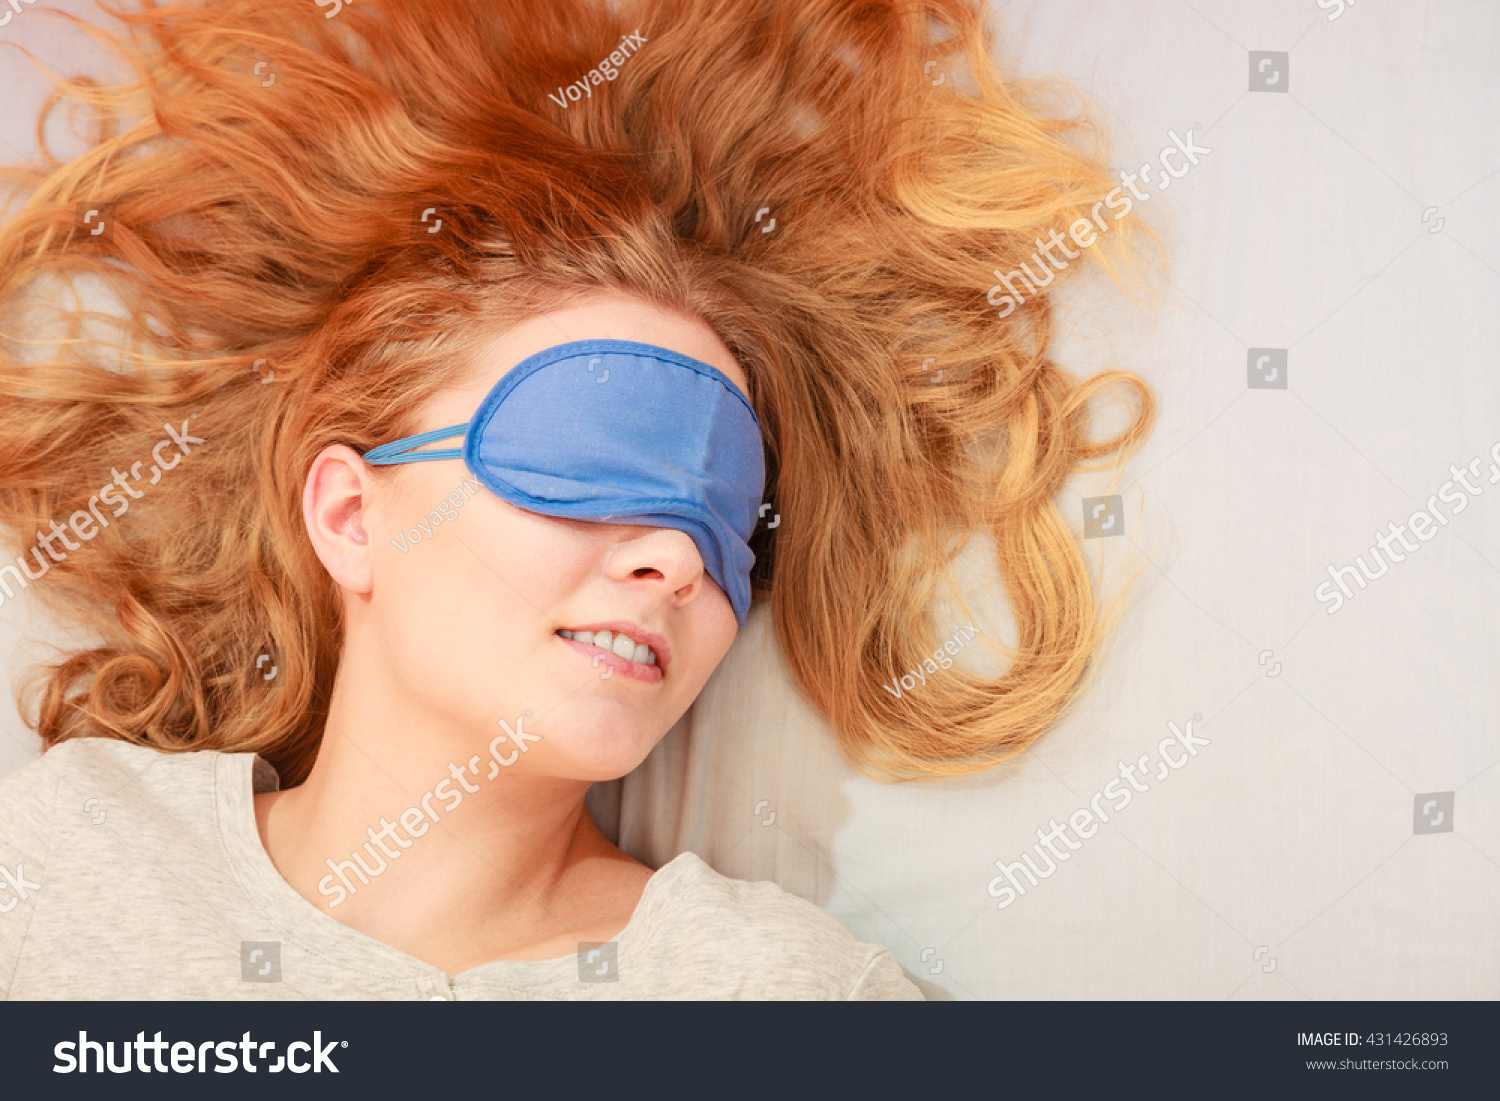 5f2166c84e5 Tired woman sleeping in bed wearing blindfold sleep mask. Young girl taking  nap.